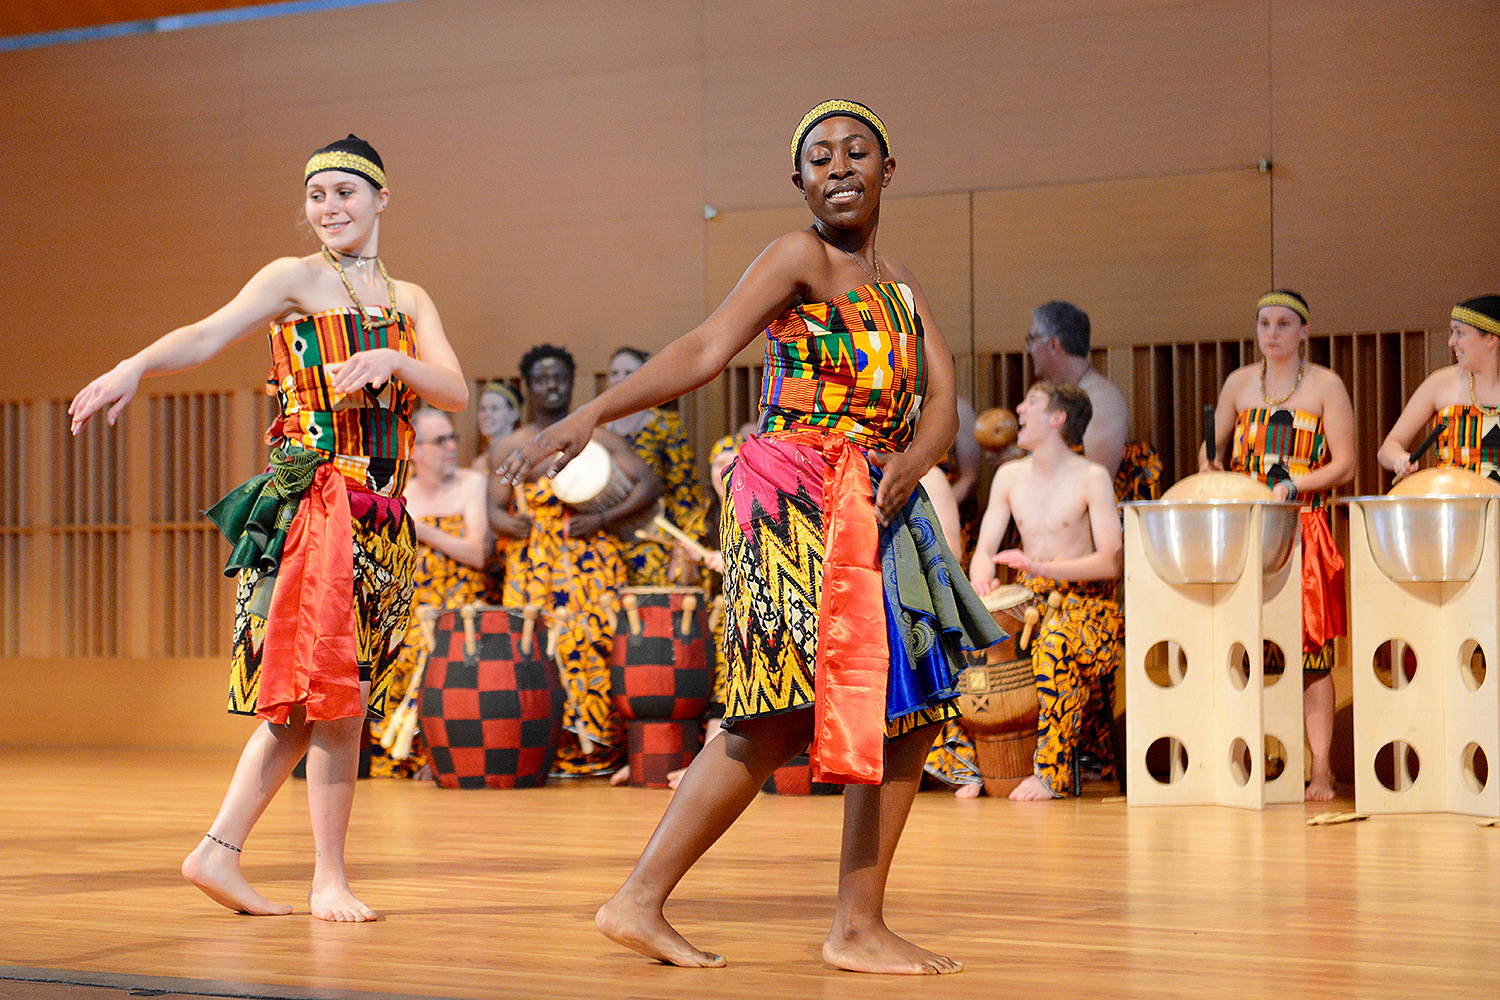 The afternoon concert featured Wesleyan's  West African Drumming and Dance Ensemble, Tufts University's Kiniwe Ensemble with the Agbekor Drum and Dance Society, University of Massachusetts Dartmouth's Kekeli African Music and Dance Ensemble, Berklee College of Music's West African Drum and Dance Ensemble, Montclair State University's West African Drumming and Dance Ensemble with the Rhythm Monsters, and Ayanda Clarke '99.